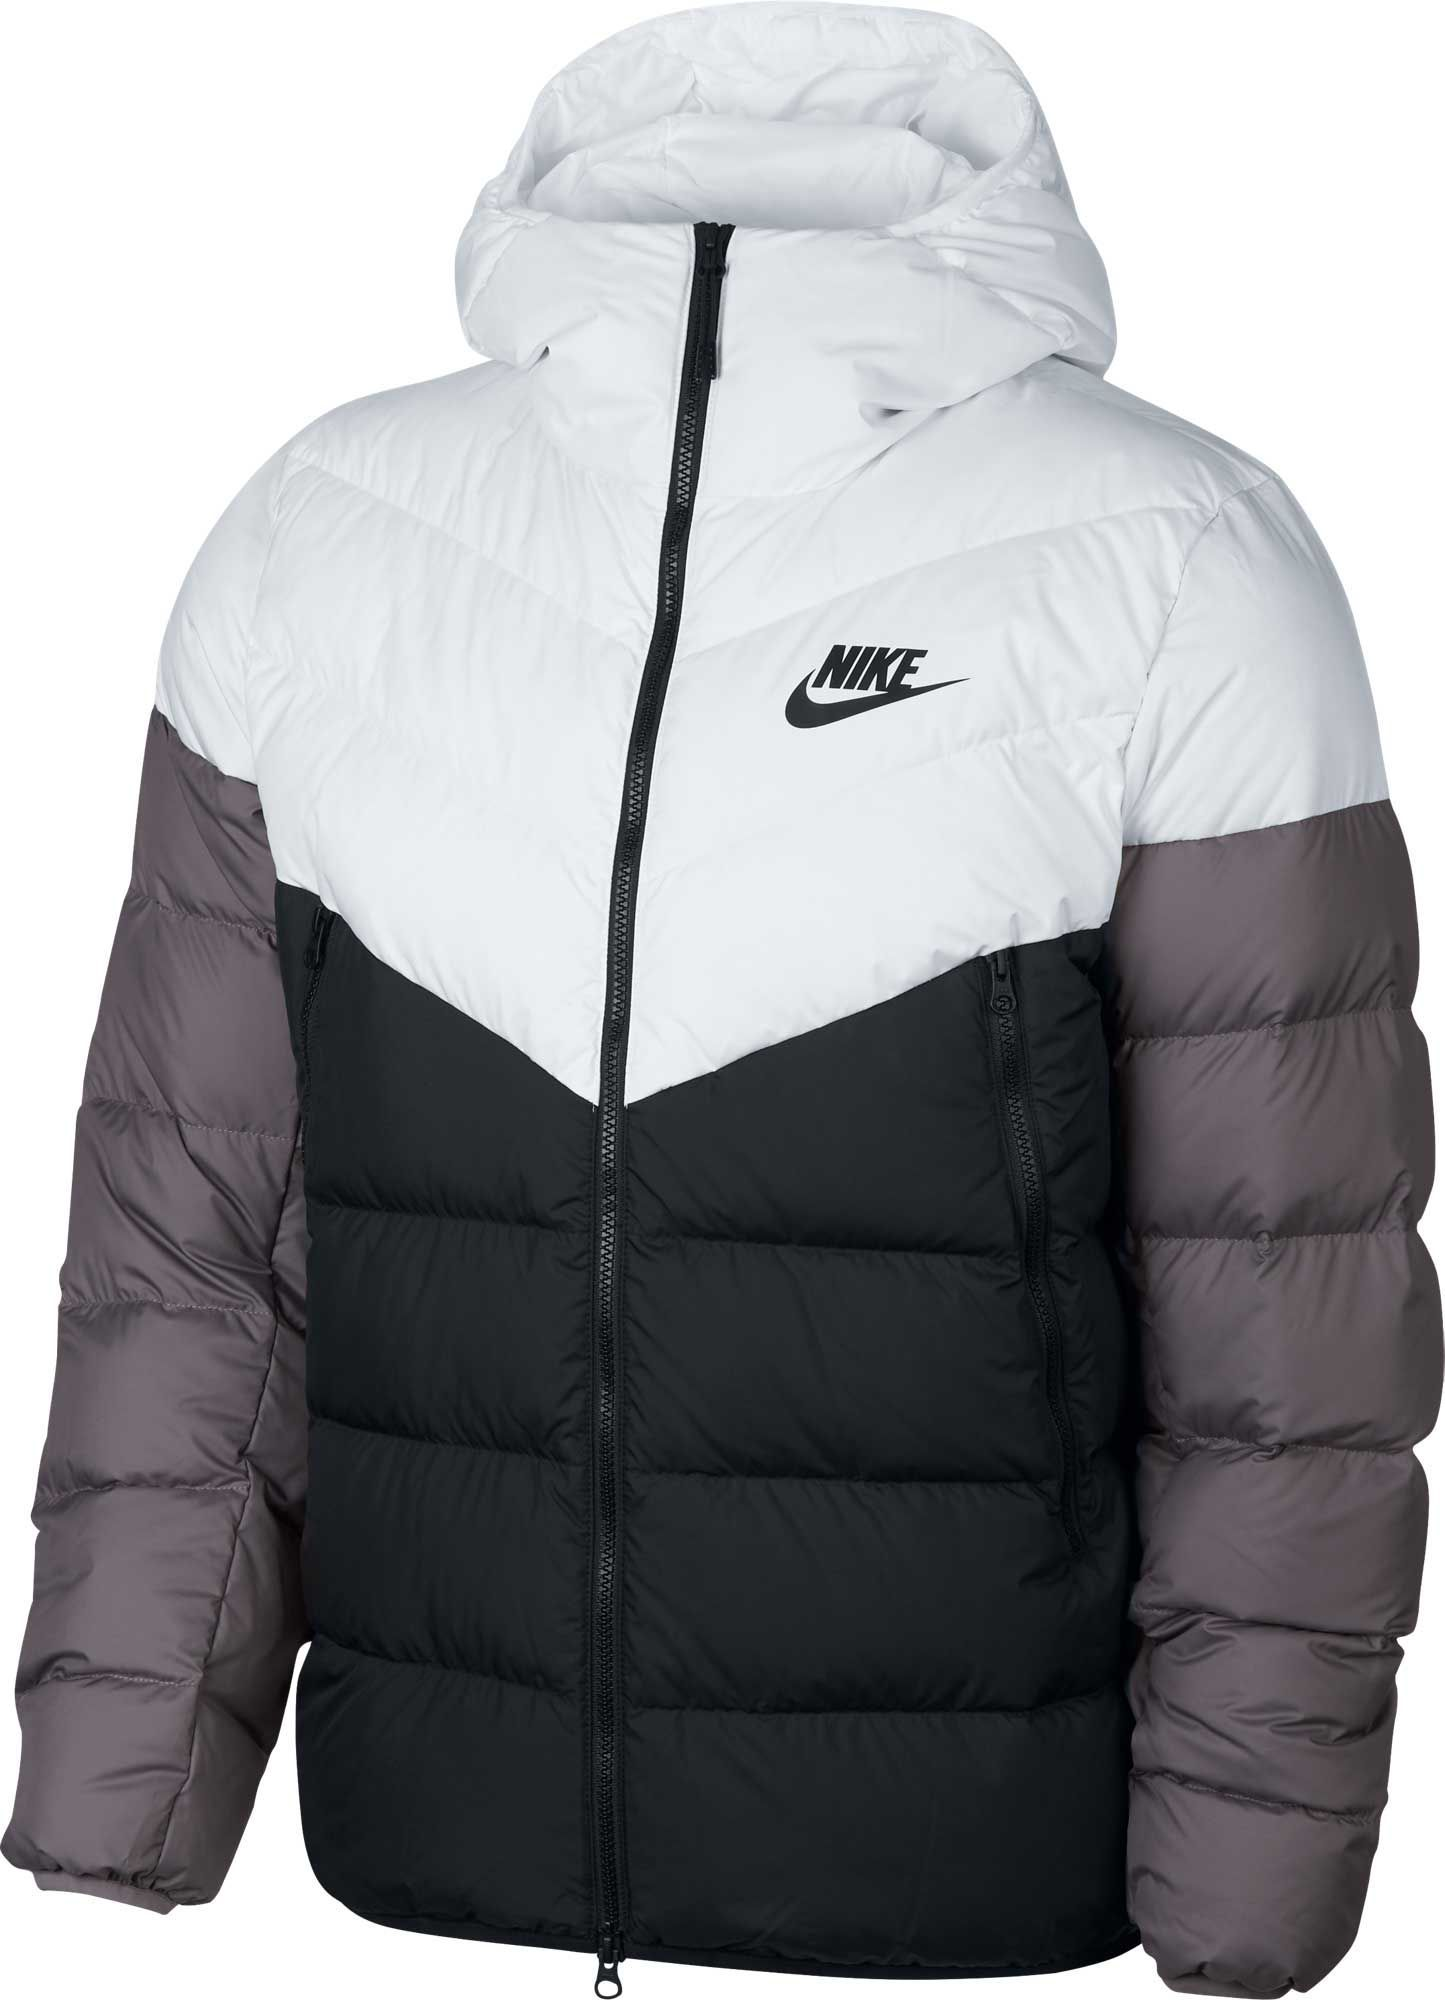 5d17eed6aca3 Nike Men s Sportswear Windrunner Down Jacket in 2019